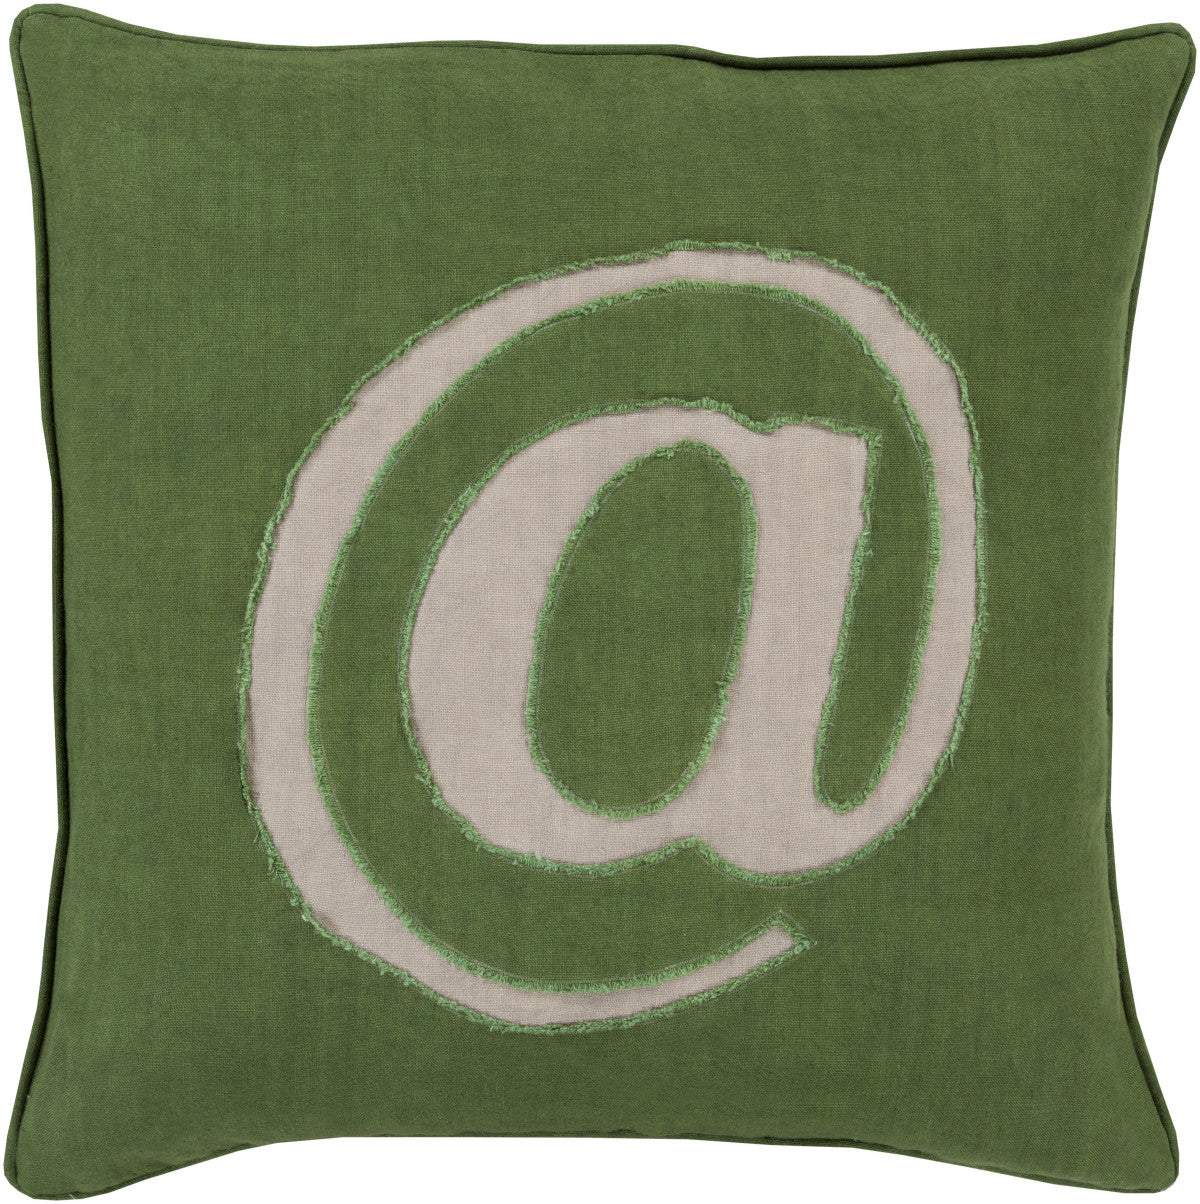 Surya Linen Text Where it's at LX-005 Pillow